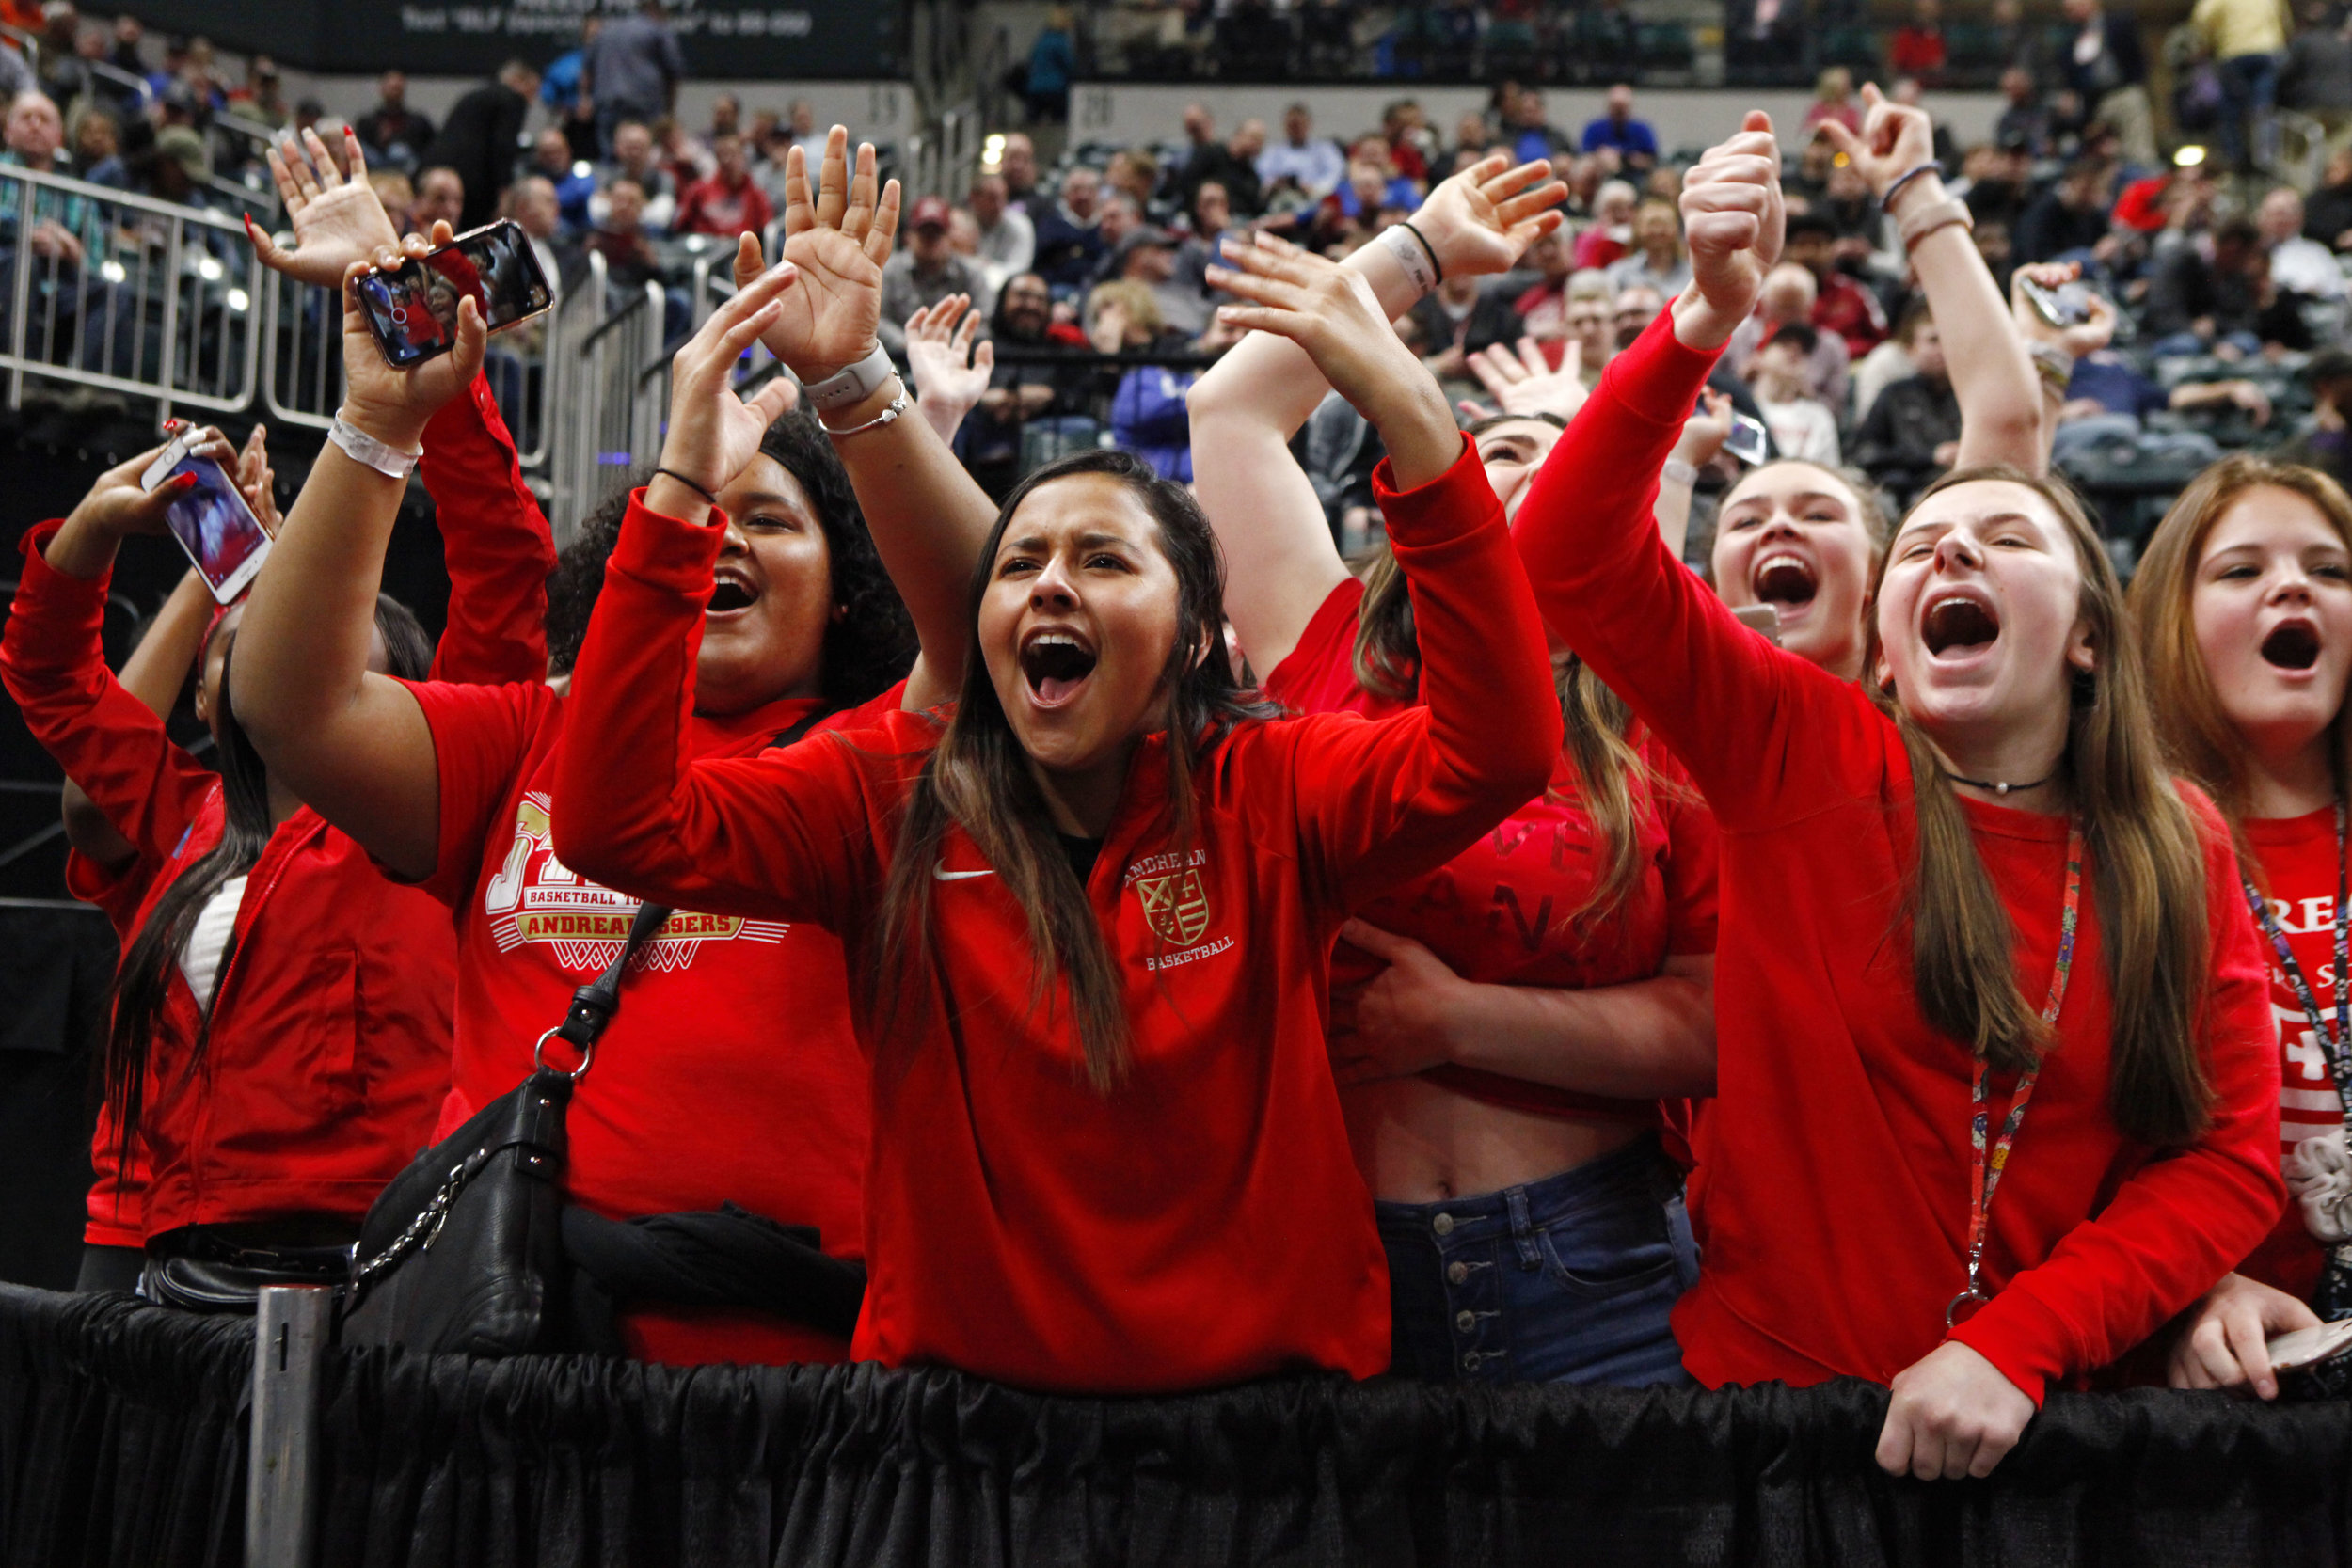 Andrean fans cheer on the 59ers against Linton-Stockton during a Class 2A state title game at Bankers Life Fieldhouse in Indianapolis.